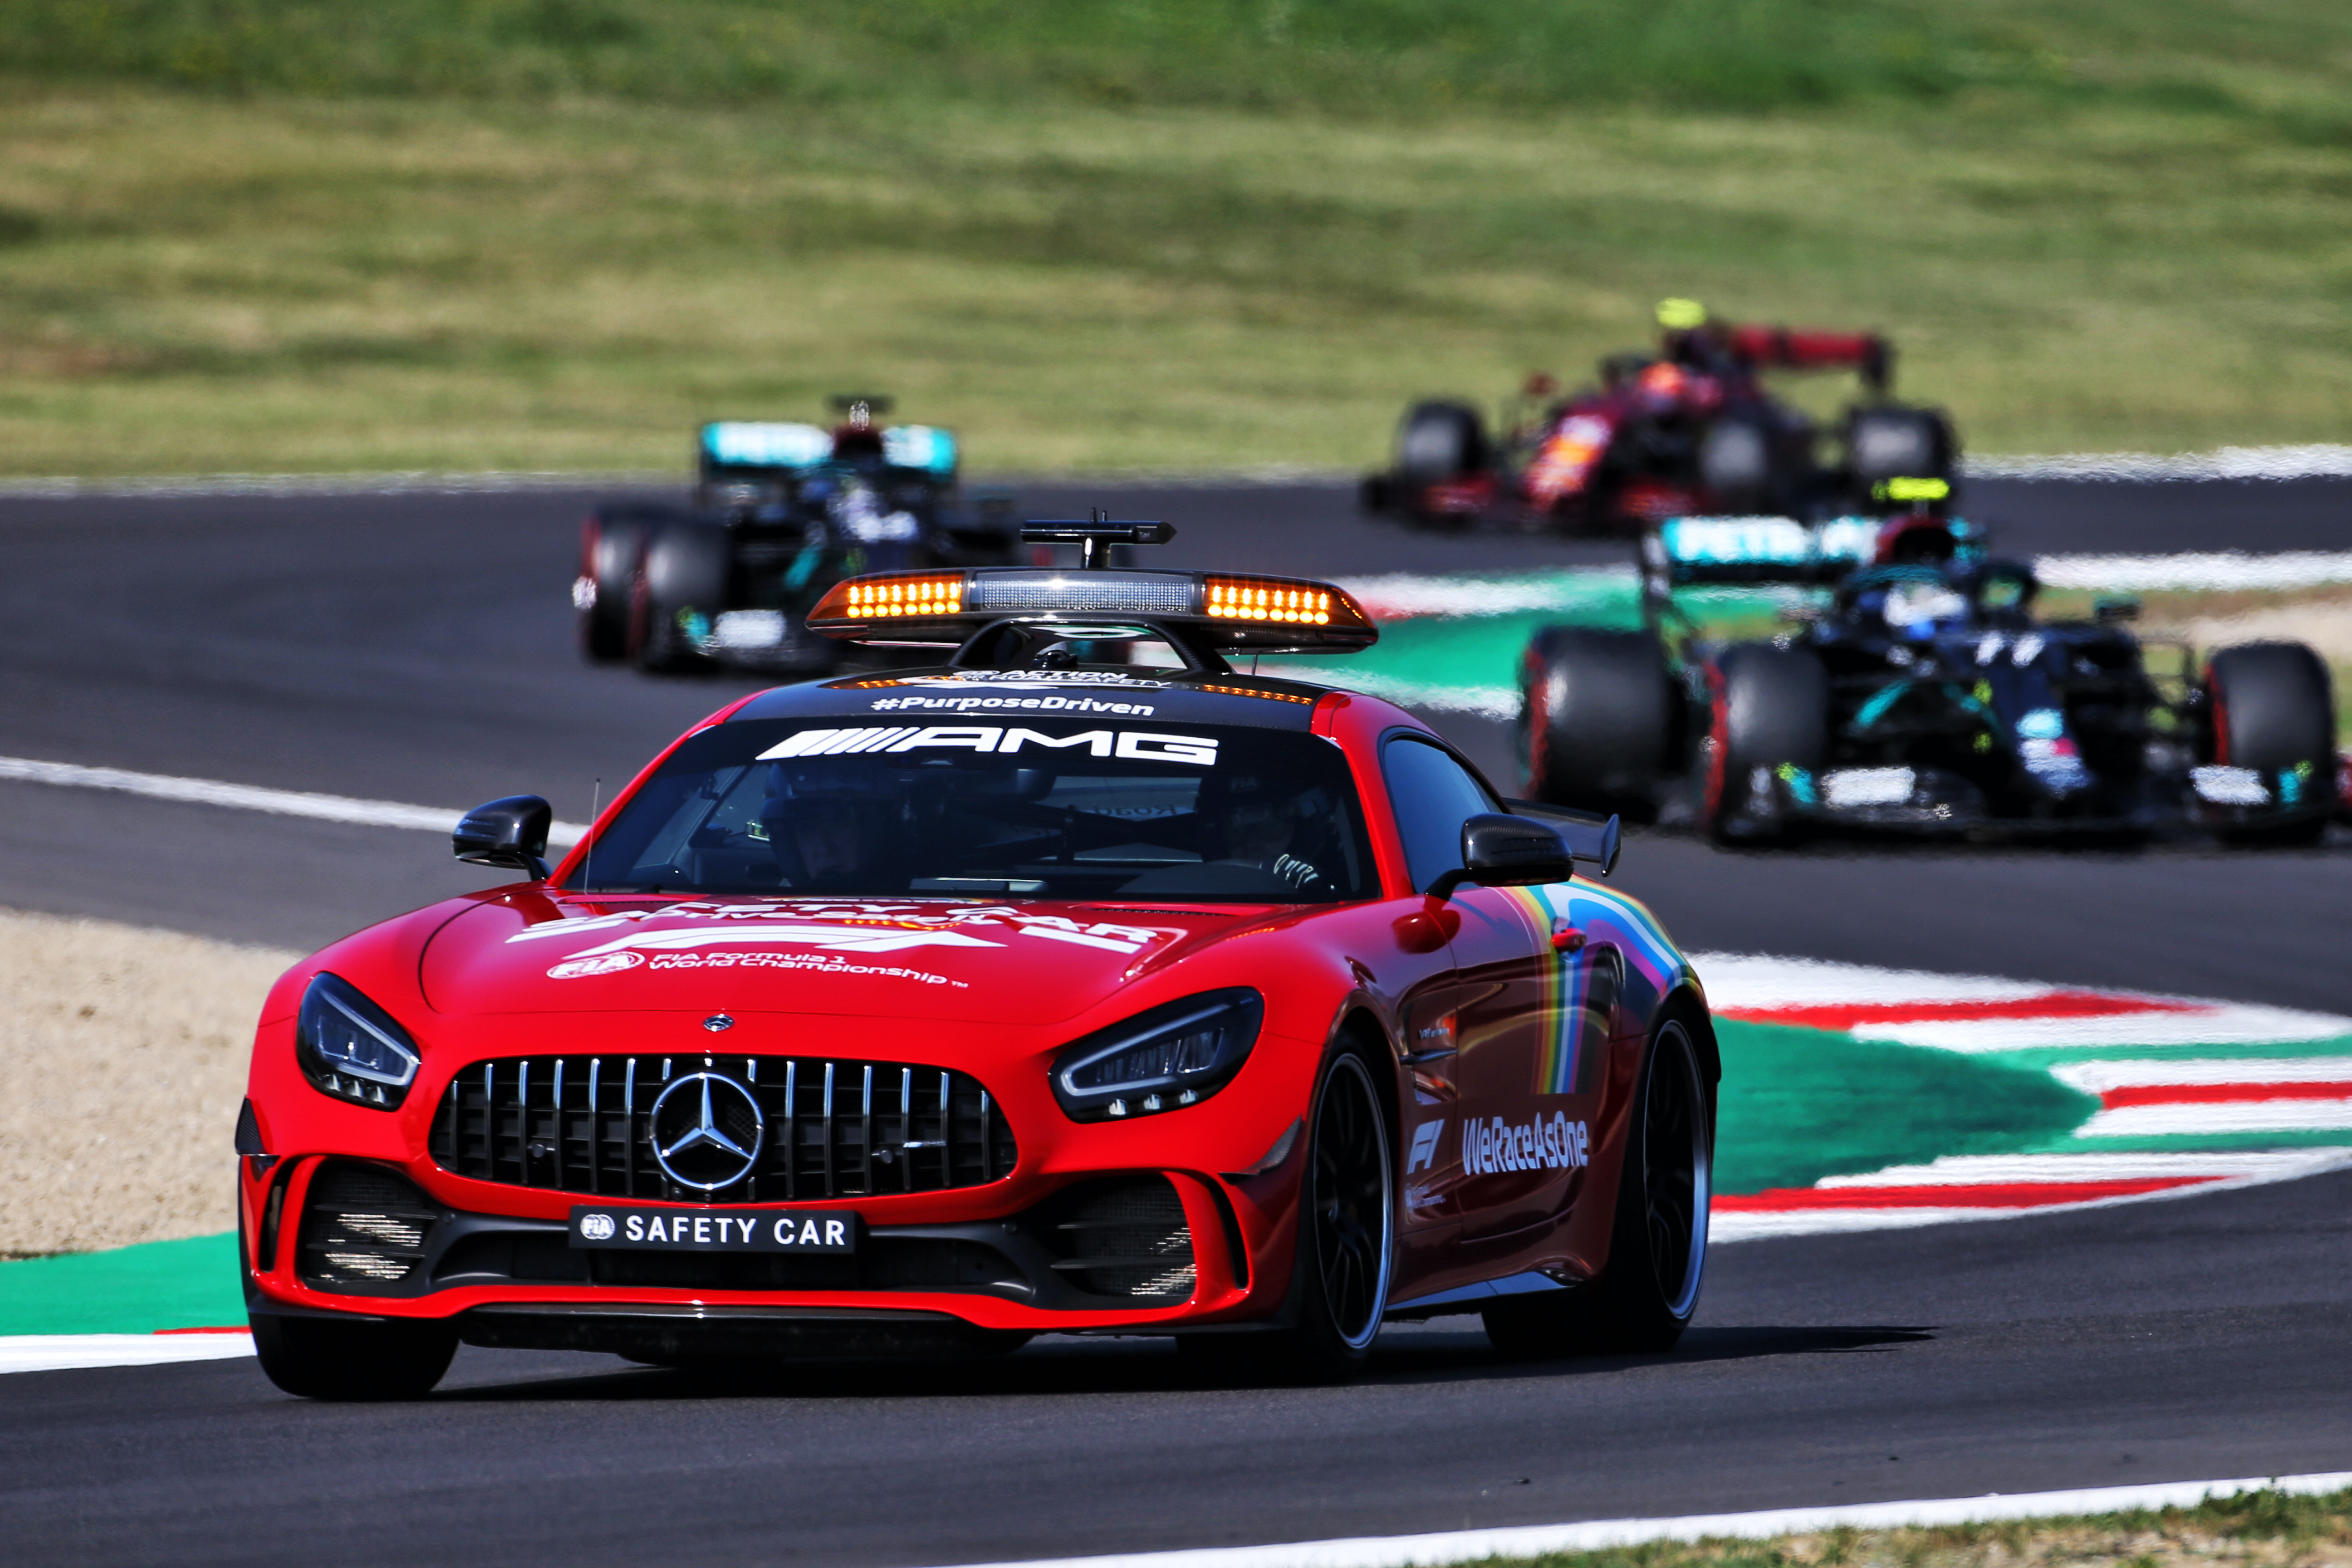 Safety car Tuscan Grand Prix Mugello 2020